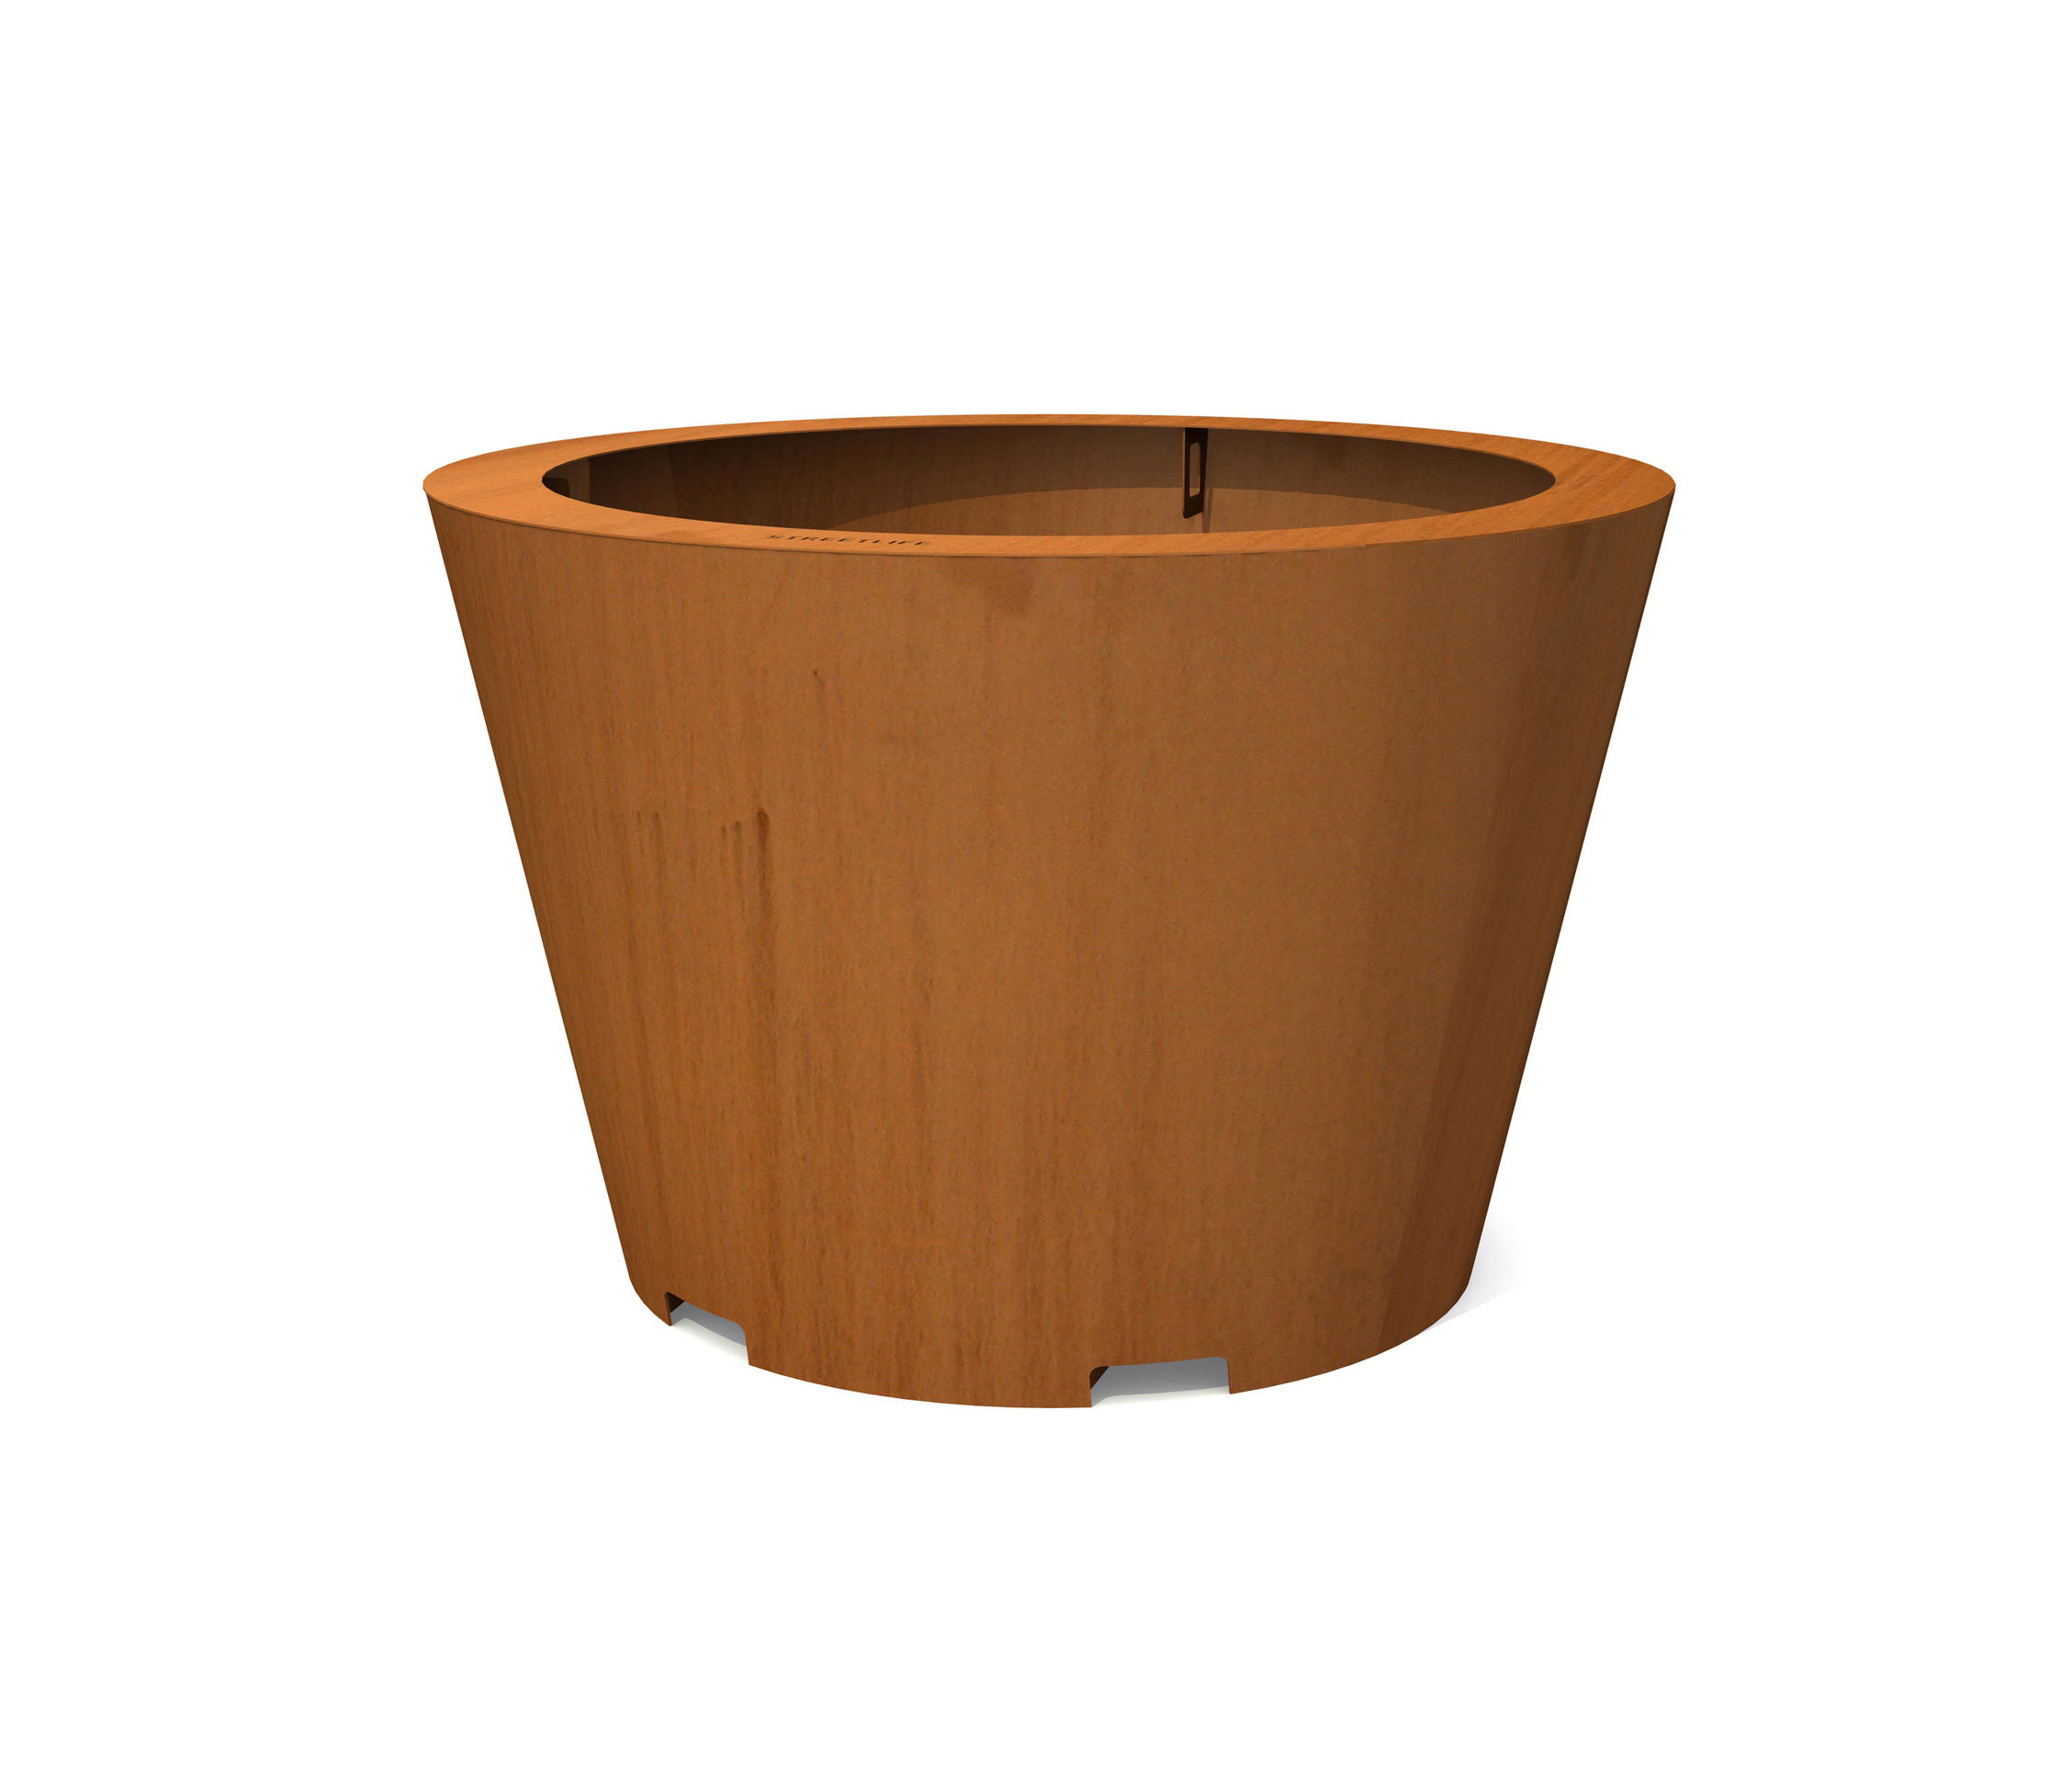 Led Plantenbak Corten Conical Tree Tubs Plant Pots From Streetlife Architonic